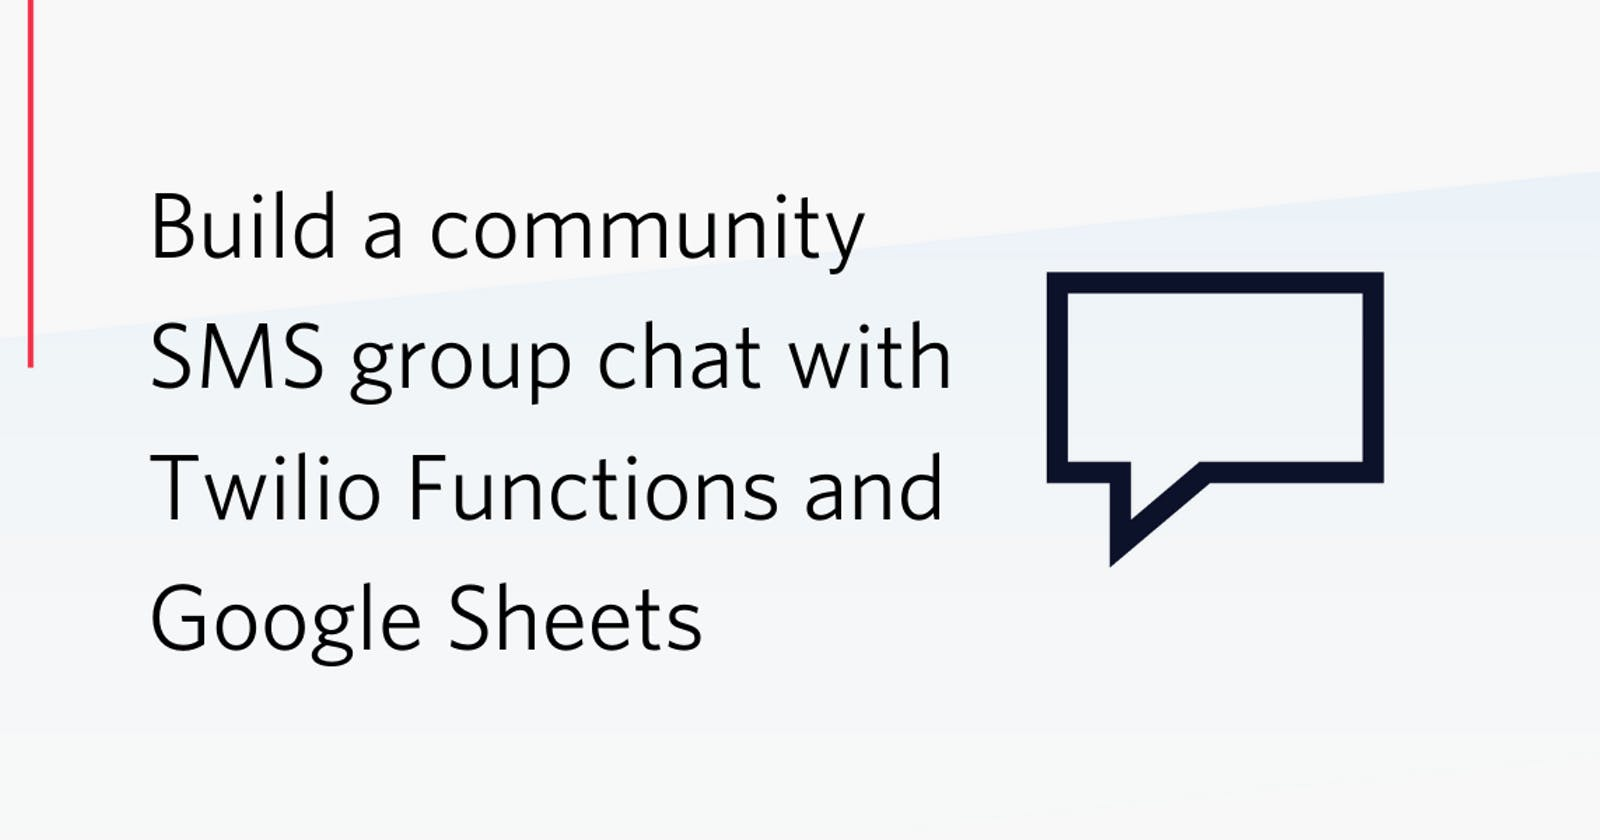 Build a community SMS group chat with Twilio Functions and Google Sheets